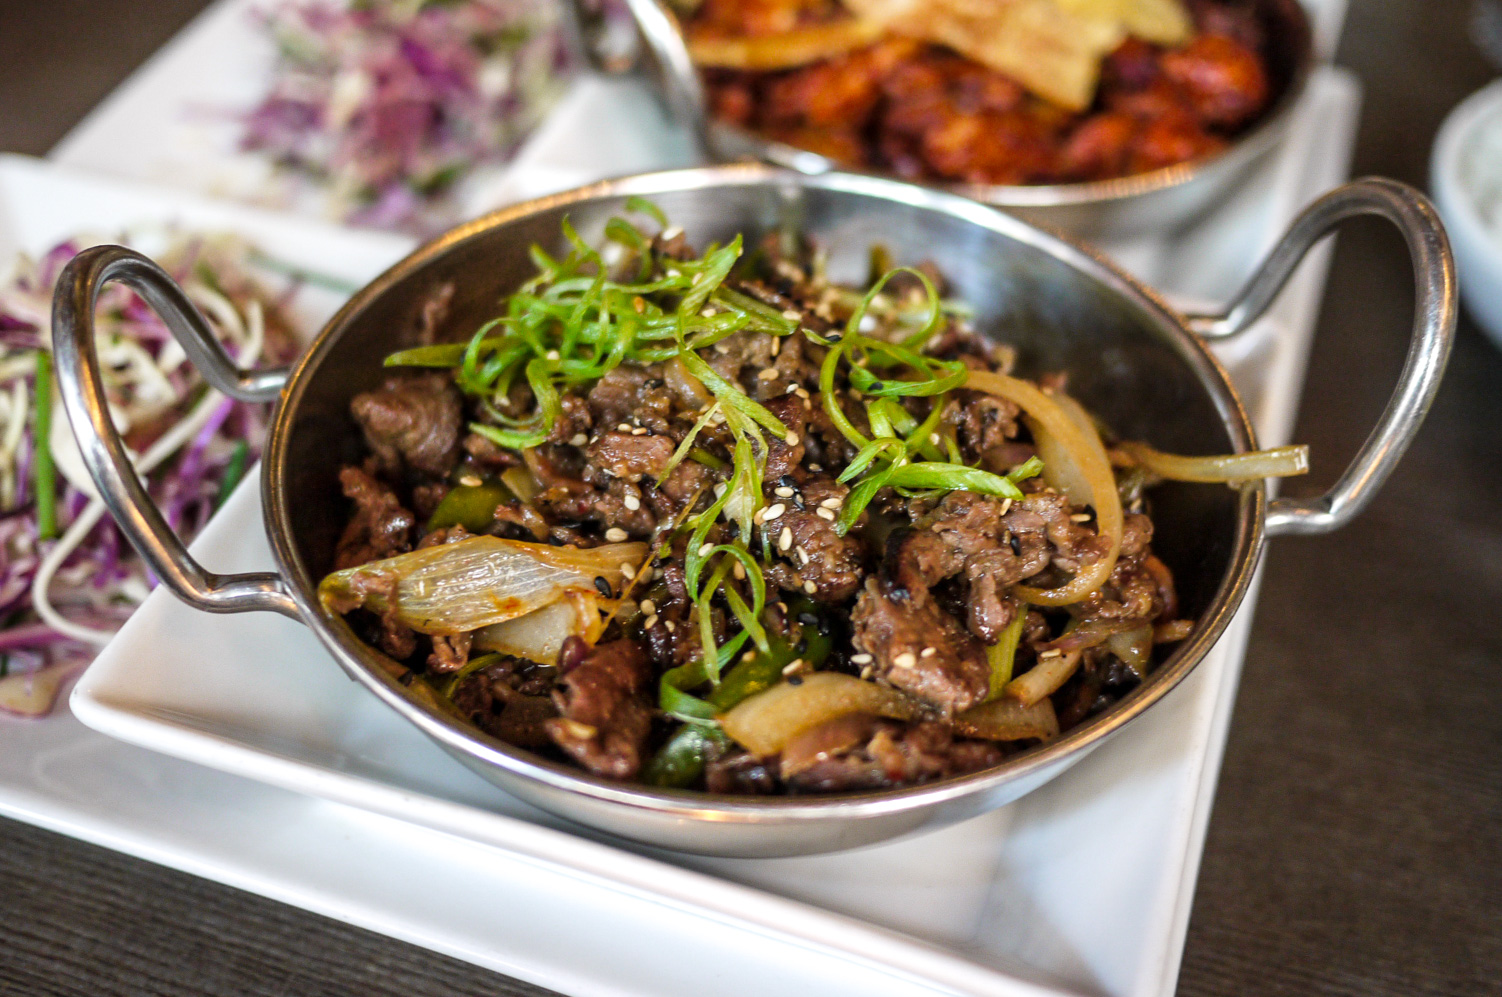 Bulgogi Pot ($14)  - soy-garlic marinated beef ribeye, mushrooms, local greens served with white rice and salad. It was tasty and you just know that the beef quality they're using is just perfect for Korean BBQ. Good for sharing too!